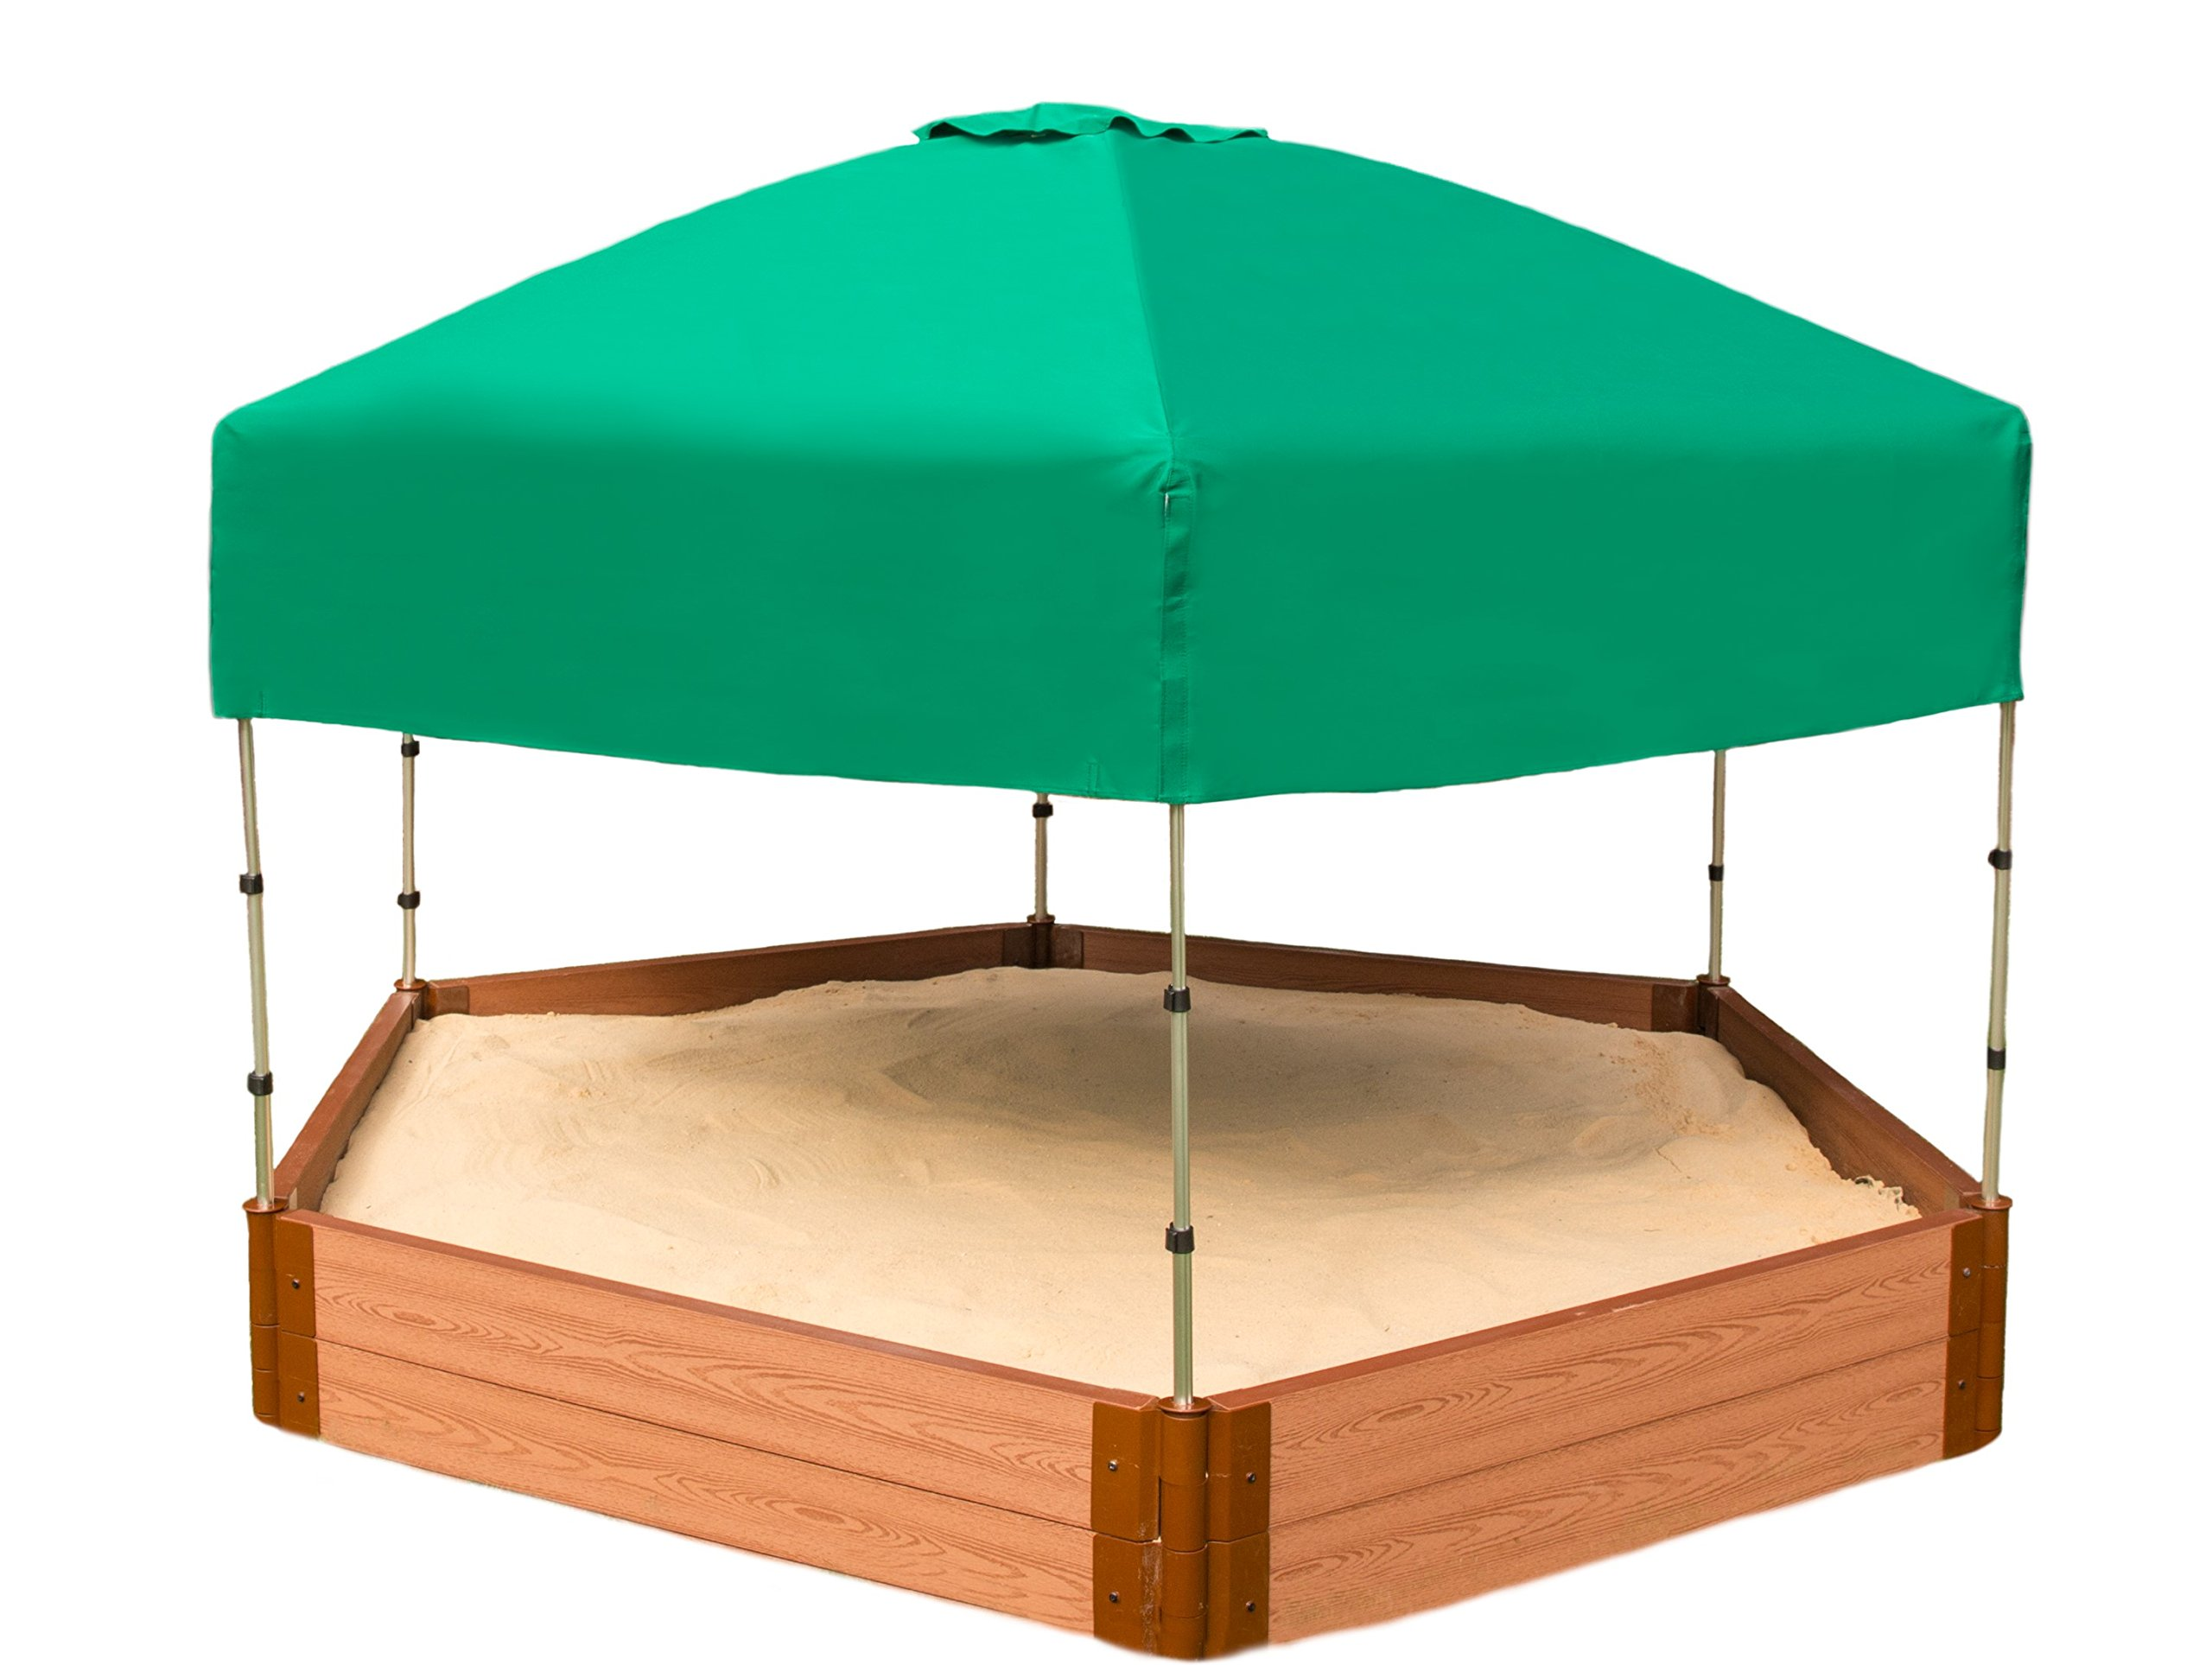 Frame It All Two'' Series 7ft. x 8ft. x 11in. Composite Hexagon Sandbox Kit with Canopy/Cover